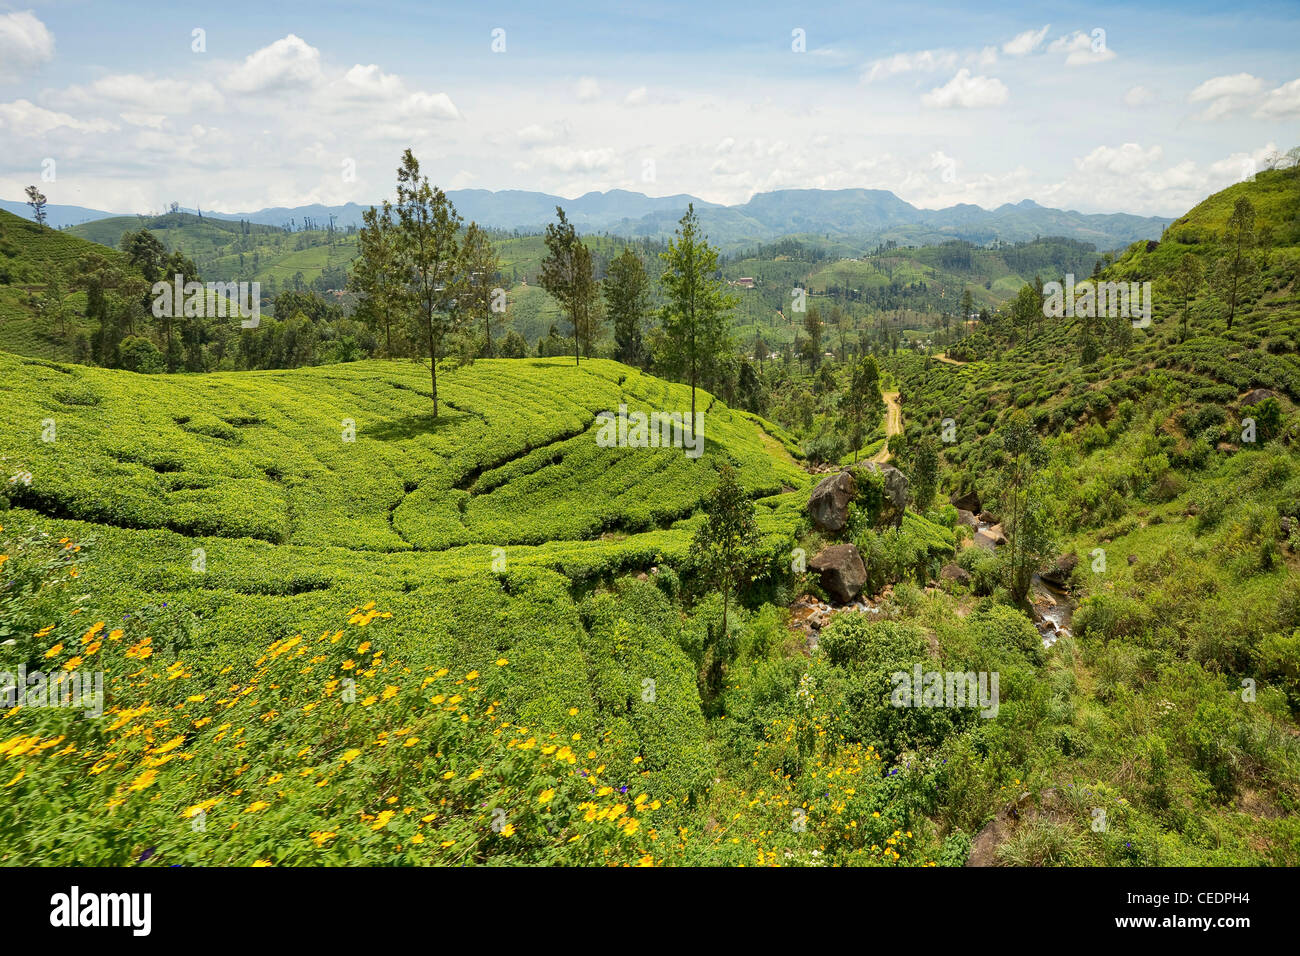 View from the scenic train through the Central Highlands, with it's hills & tea plantations, near Nuwara - Stock Image